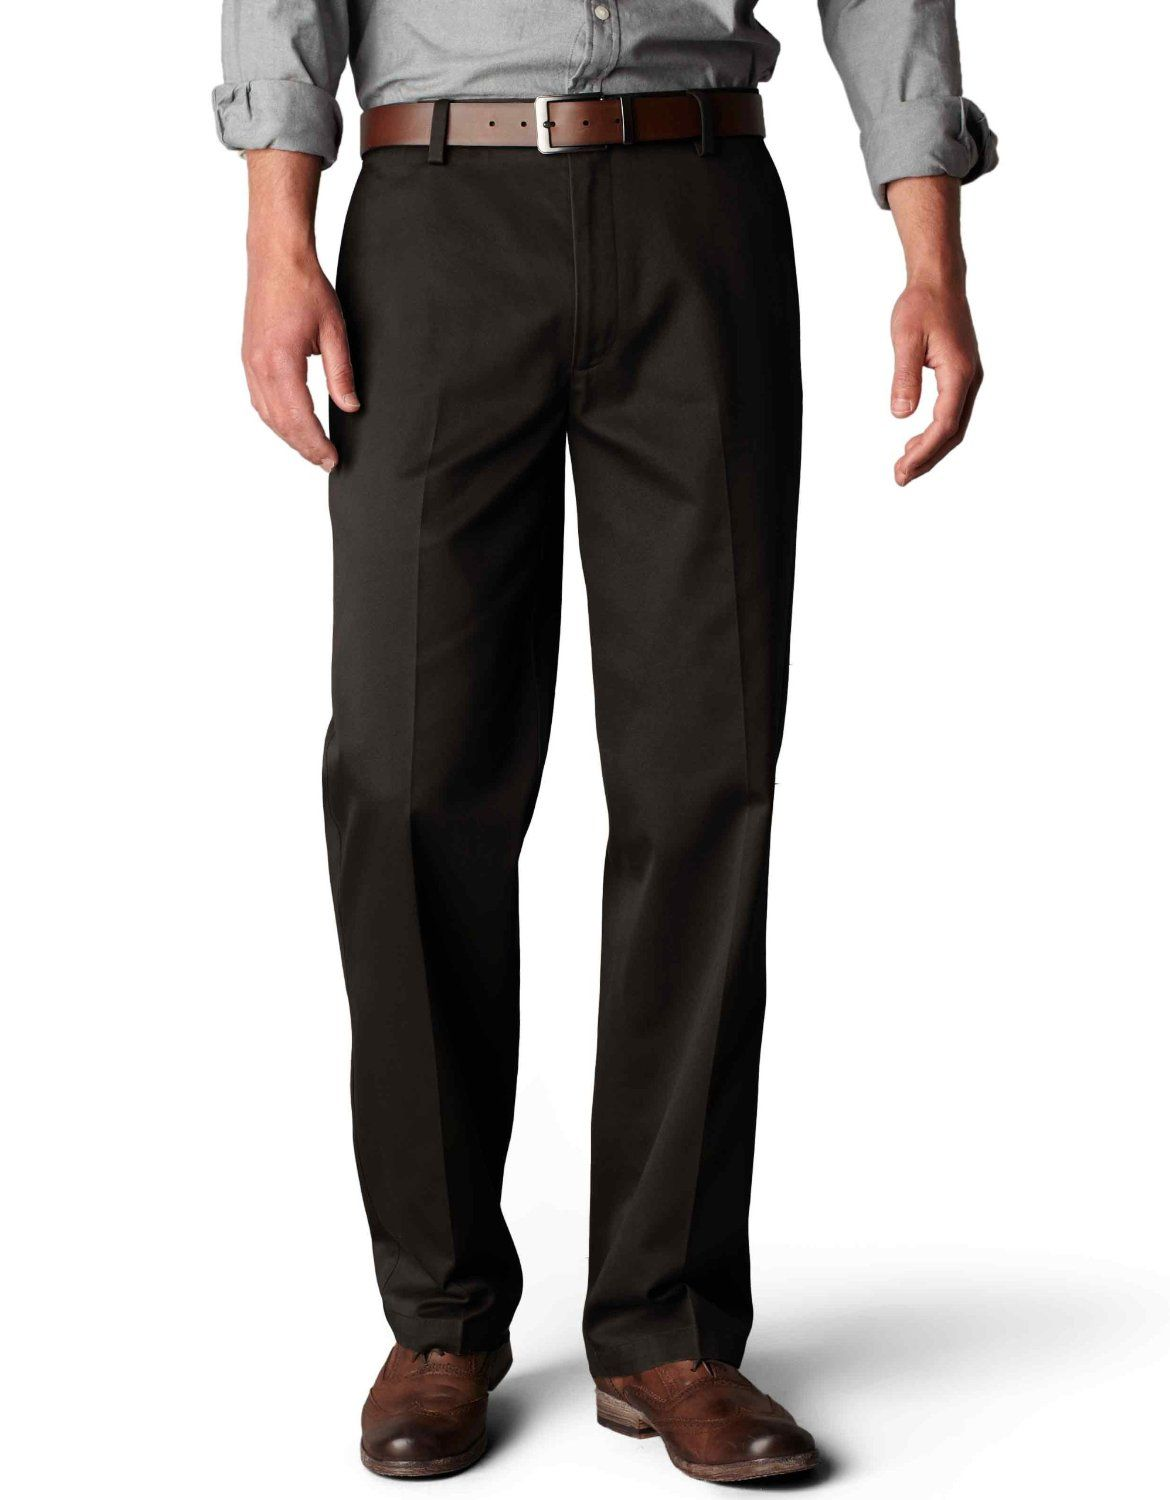 e0e47cf42e5d3f Amazon.com: Dockers Men's Signature Khaki D2 Straight Fit Flat Front Pant:  Clothing $22